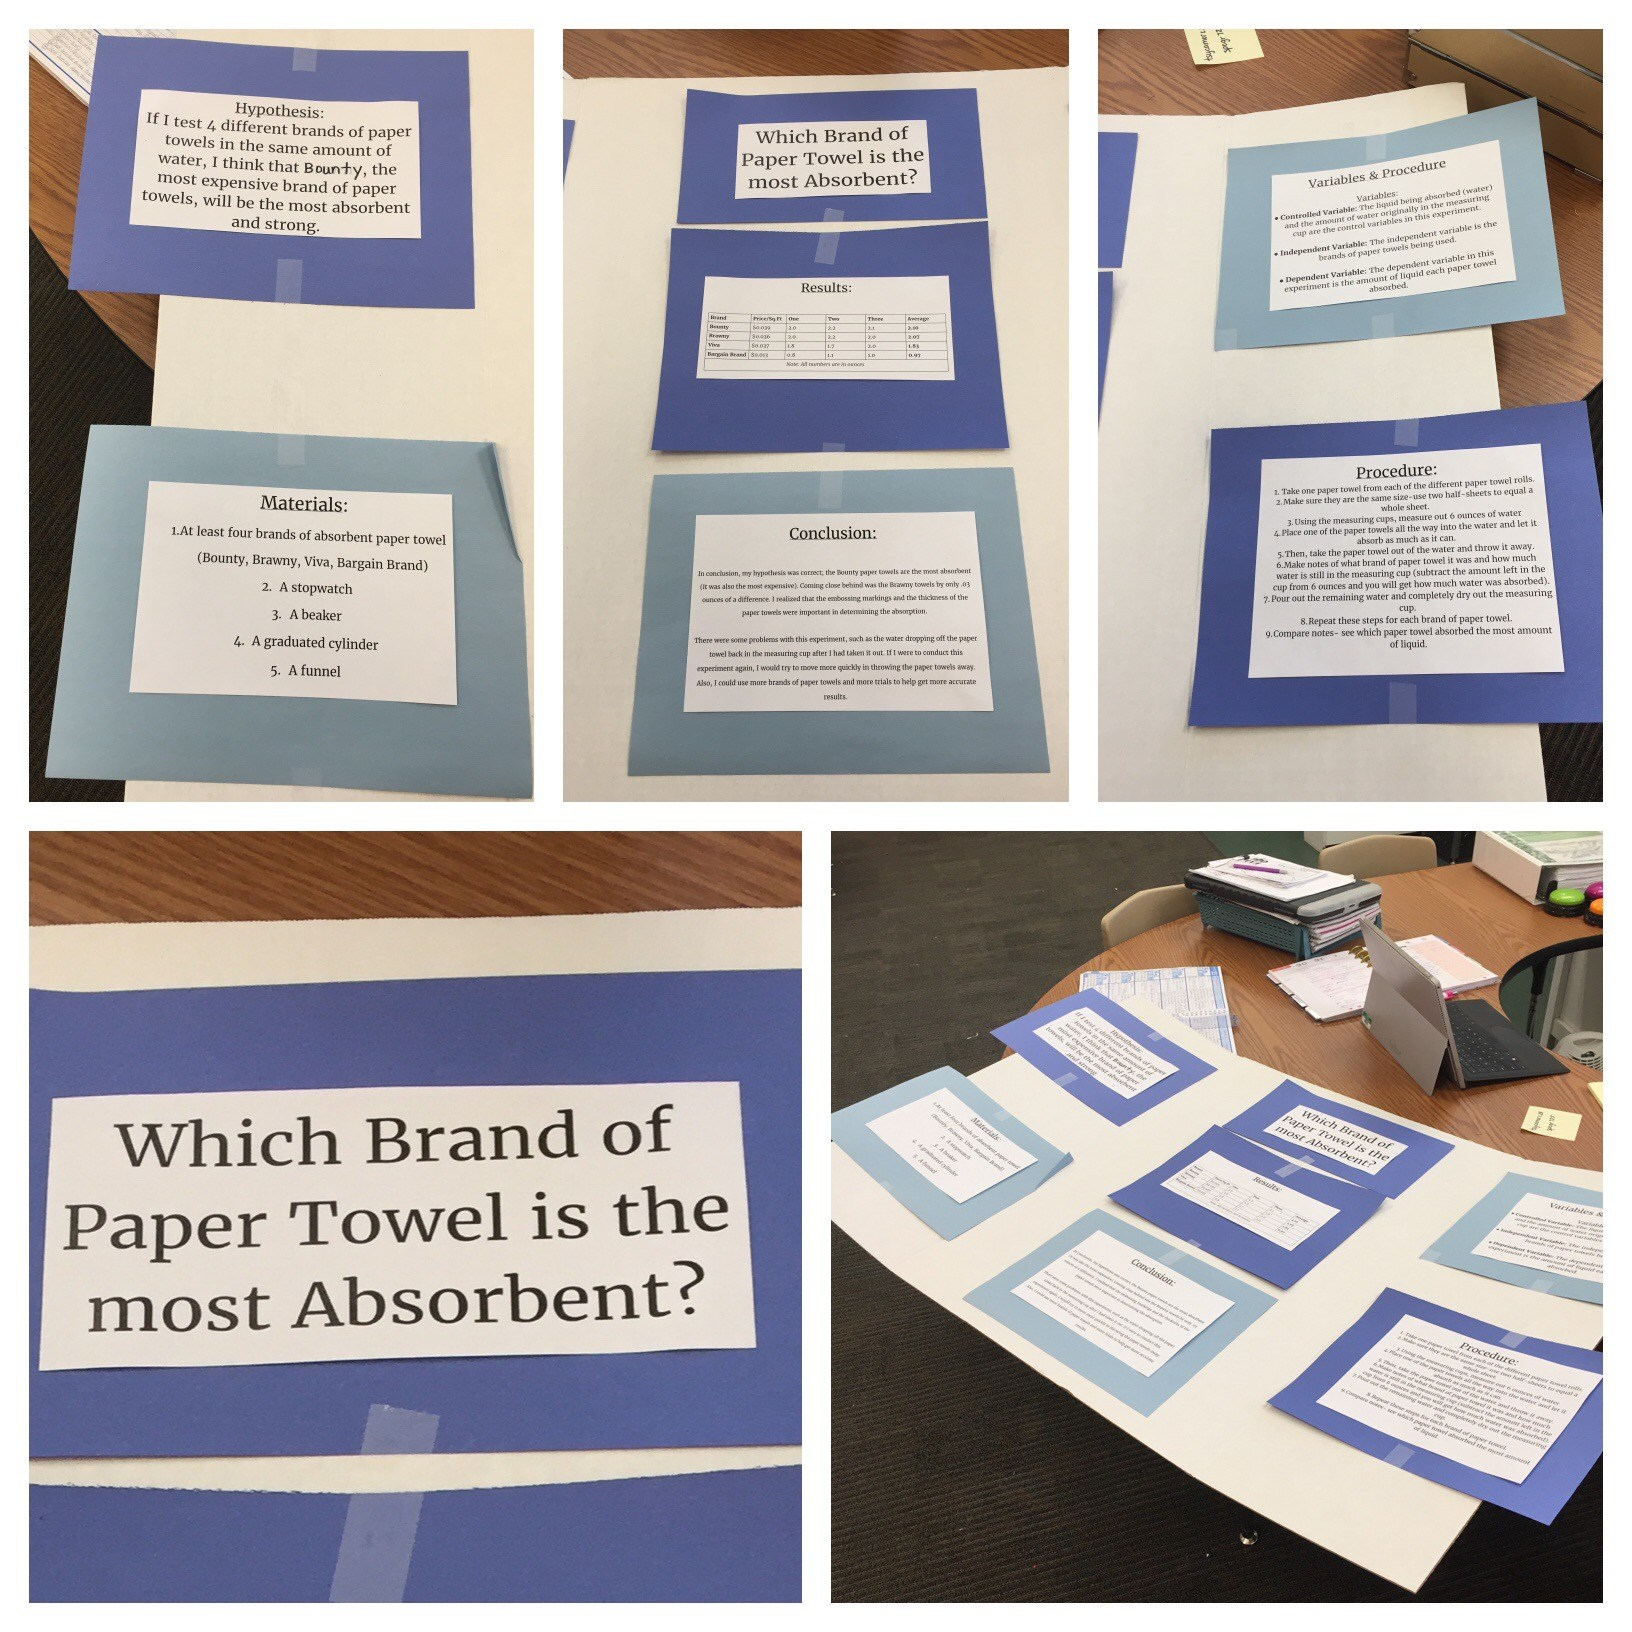 an introduction to testing of various brands of paper towels Testing paper towel strength and absorbency makes easy, fun and informative projects for school children and a fun activity for children at home purchase three to four different brands and then get home and start your various tests to find the strongest paper towel and the most absorbent paper.